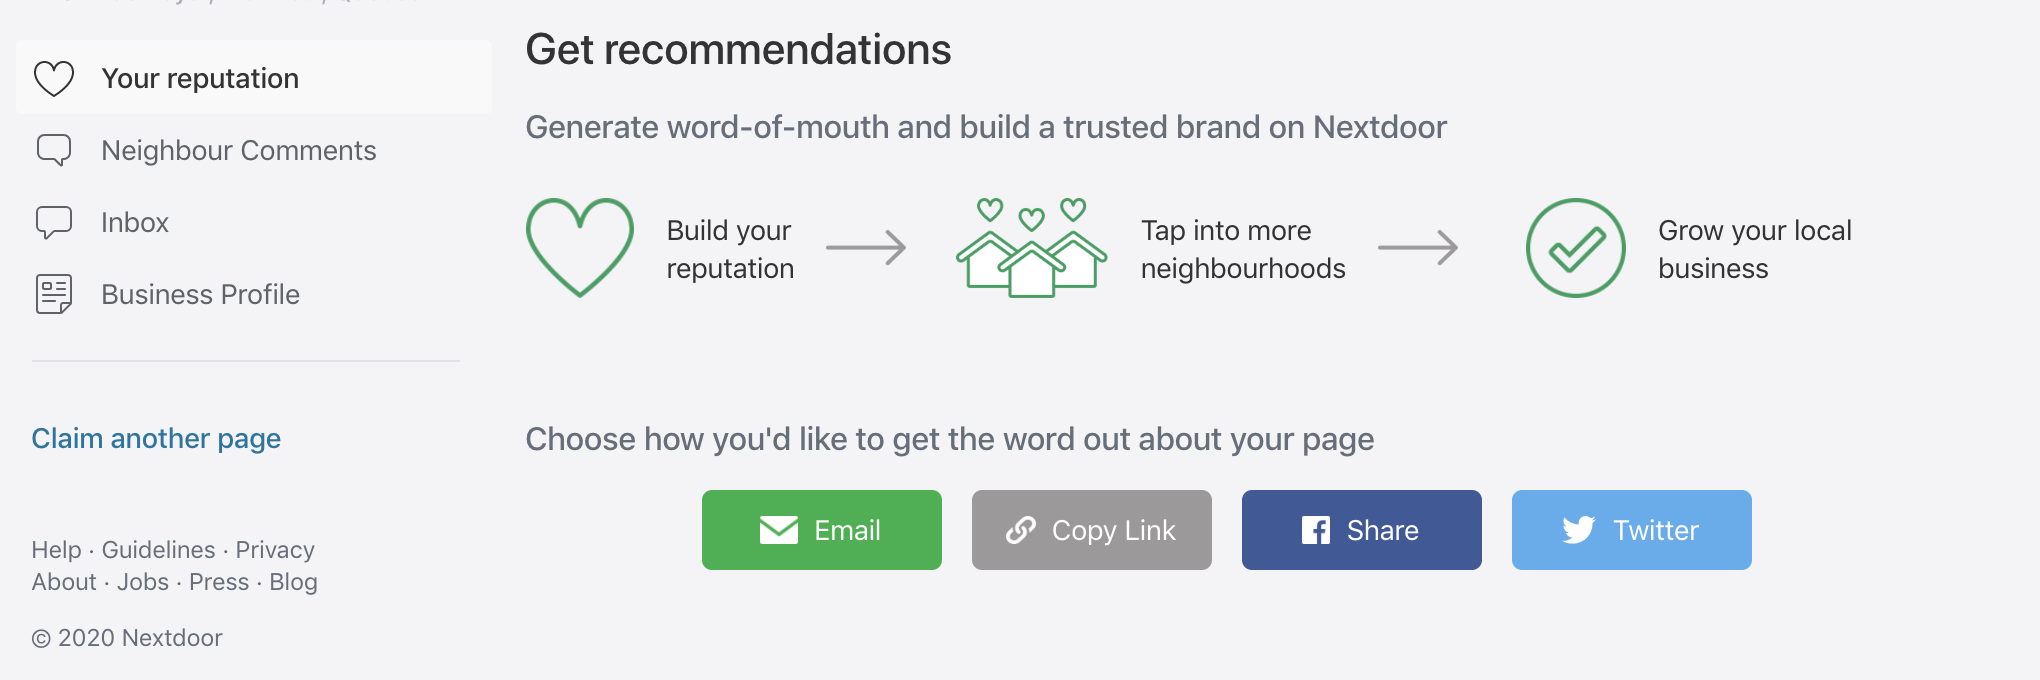 """Your reputation"" tab in Nextdoor for Business with prompt to ""Get recommendations"" via email, copy link, Facebook share, or Twitter"